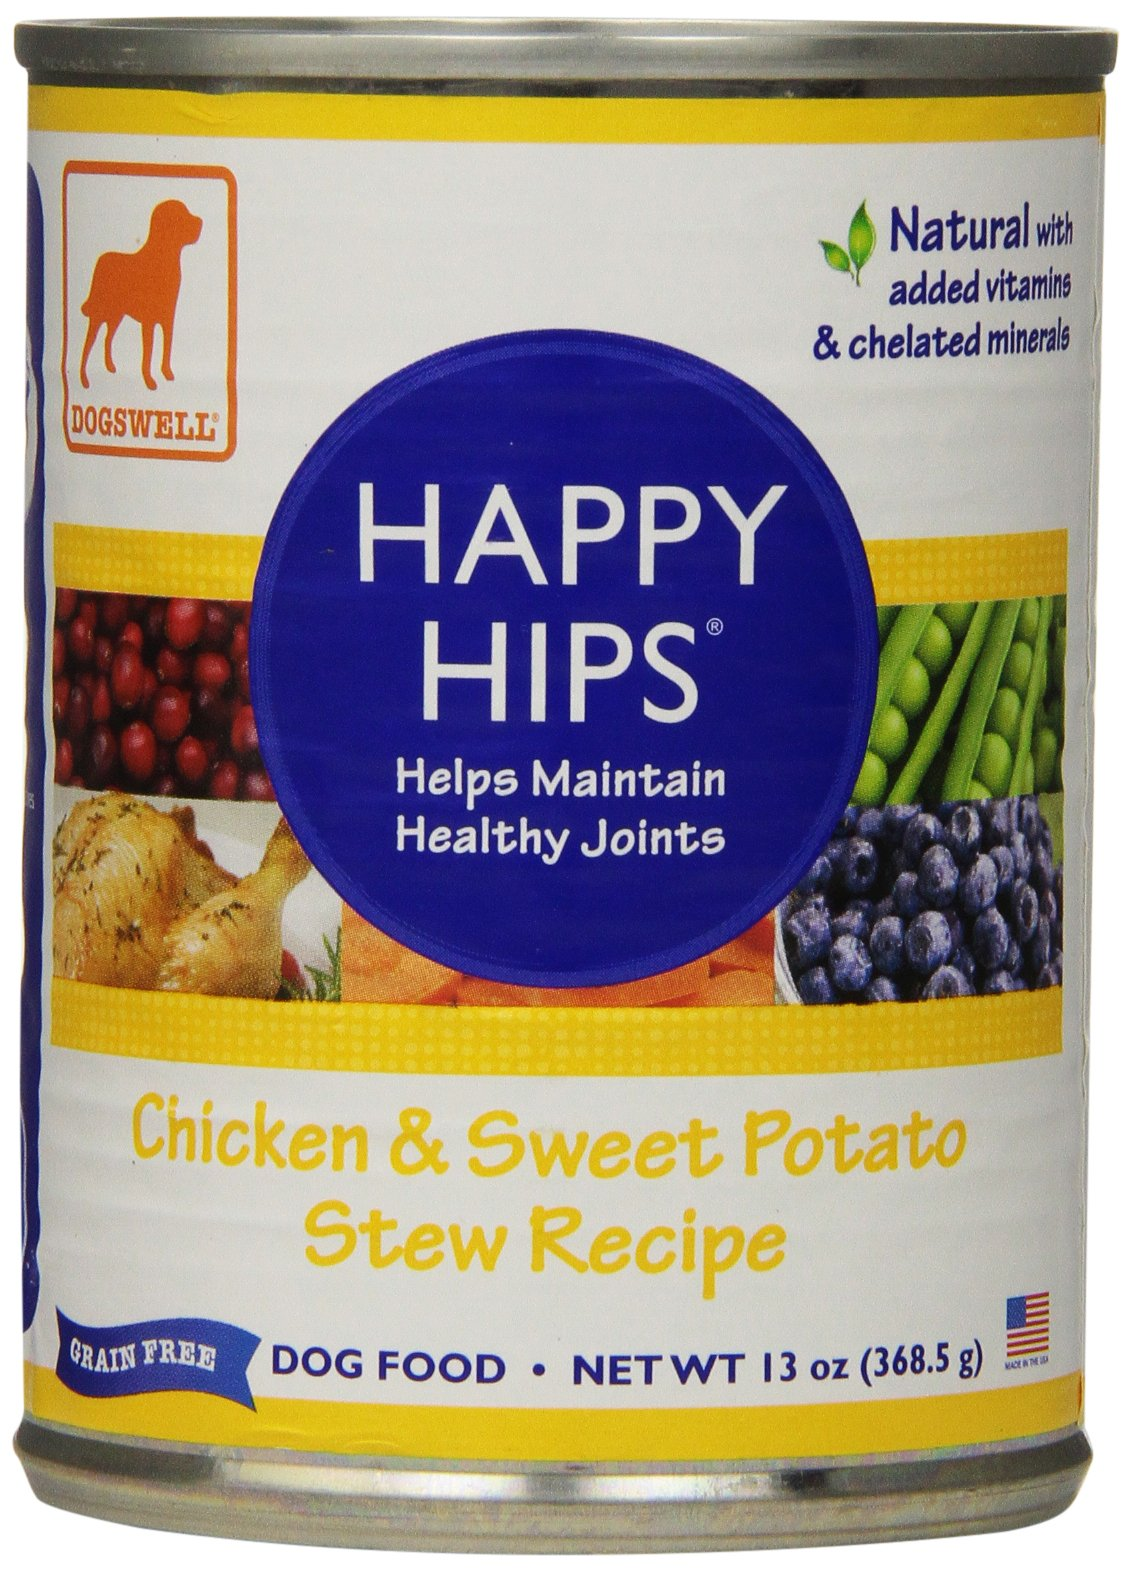 DOGSWELL Happy Hips Wet Dog Food with Glucosamine & Chondroitin, Adult Formula, Chicken Recipe, 12 cans by DOGSWELL